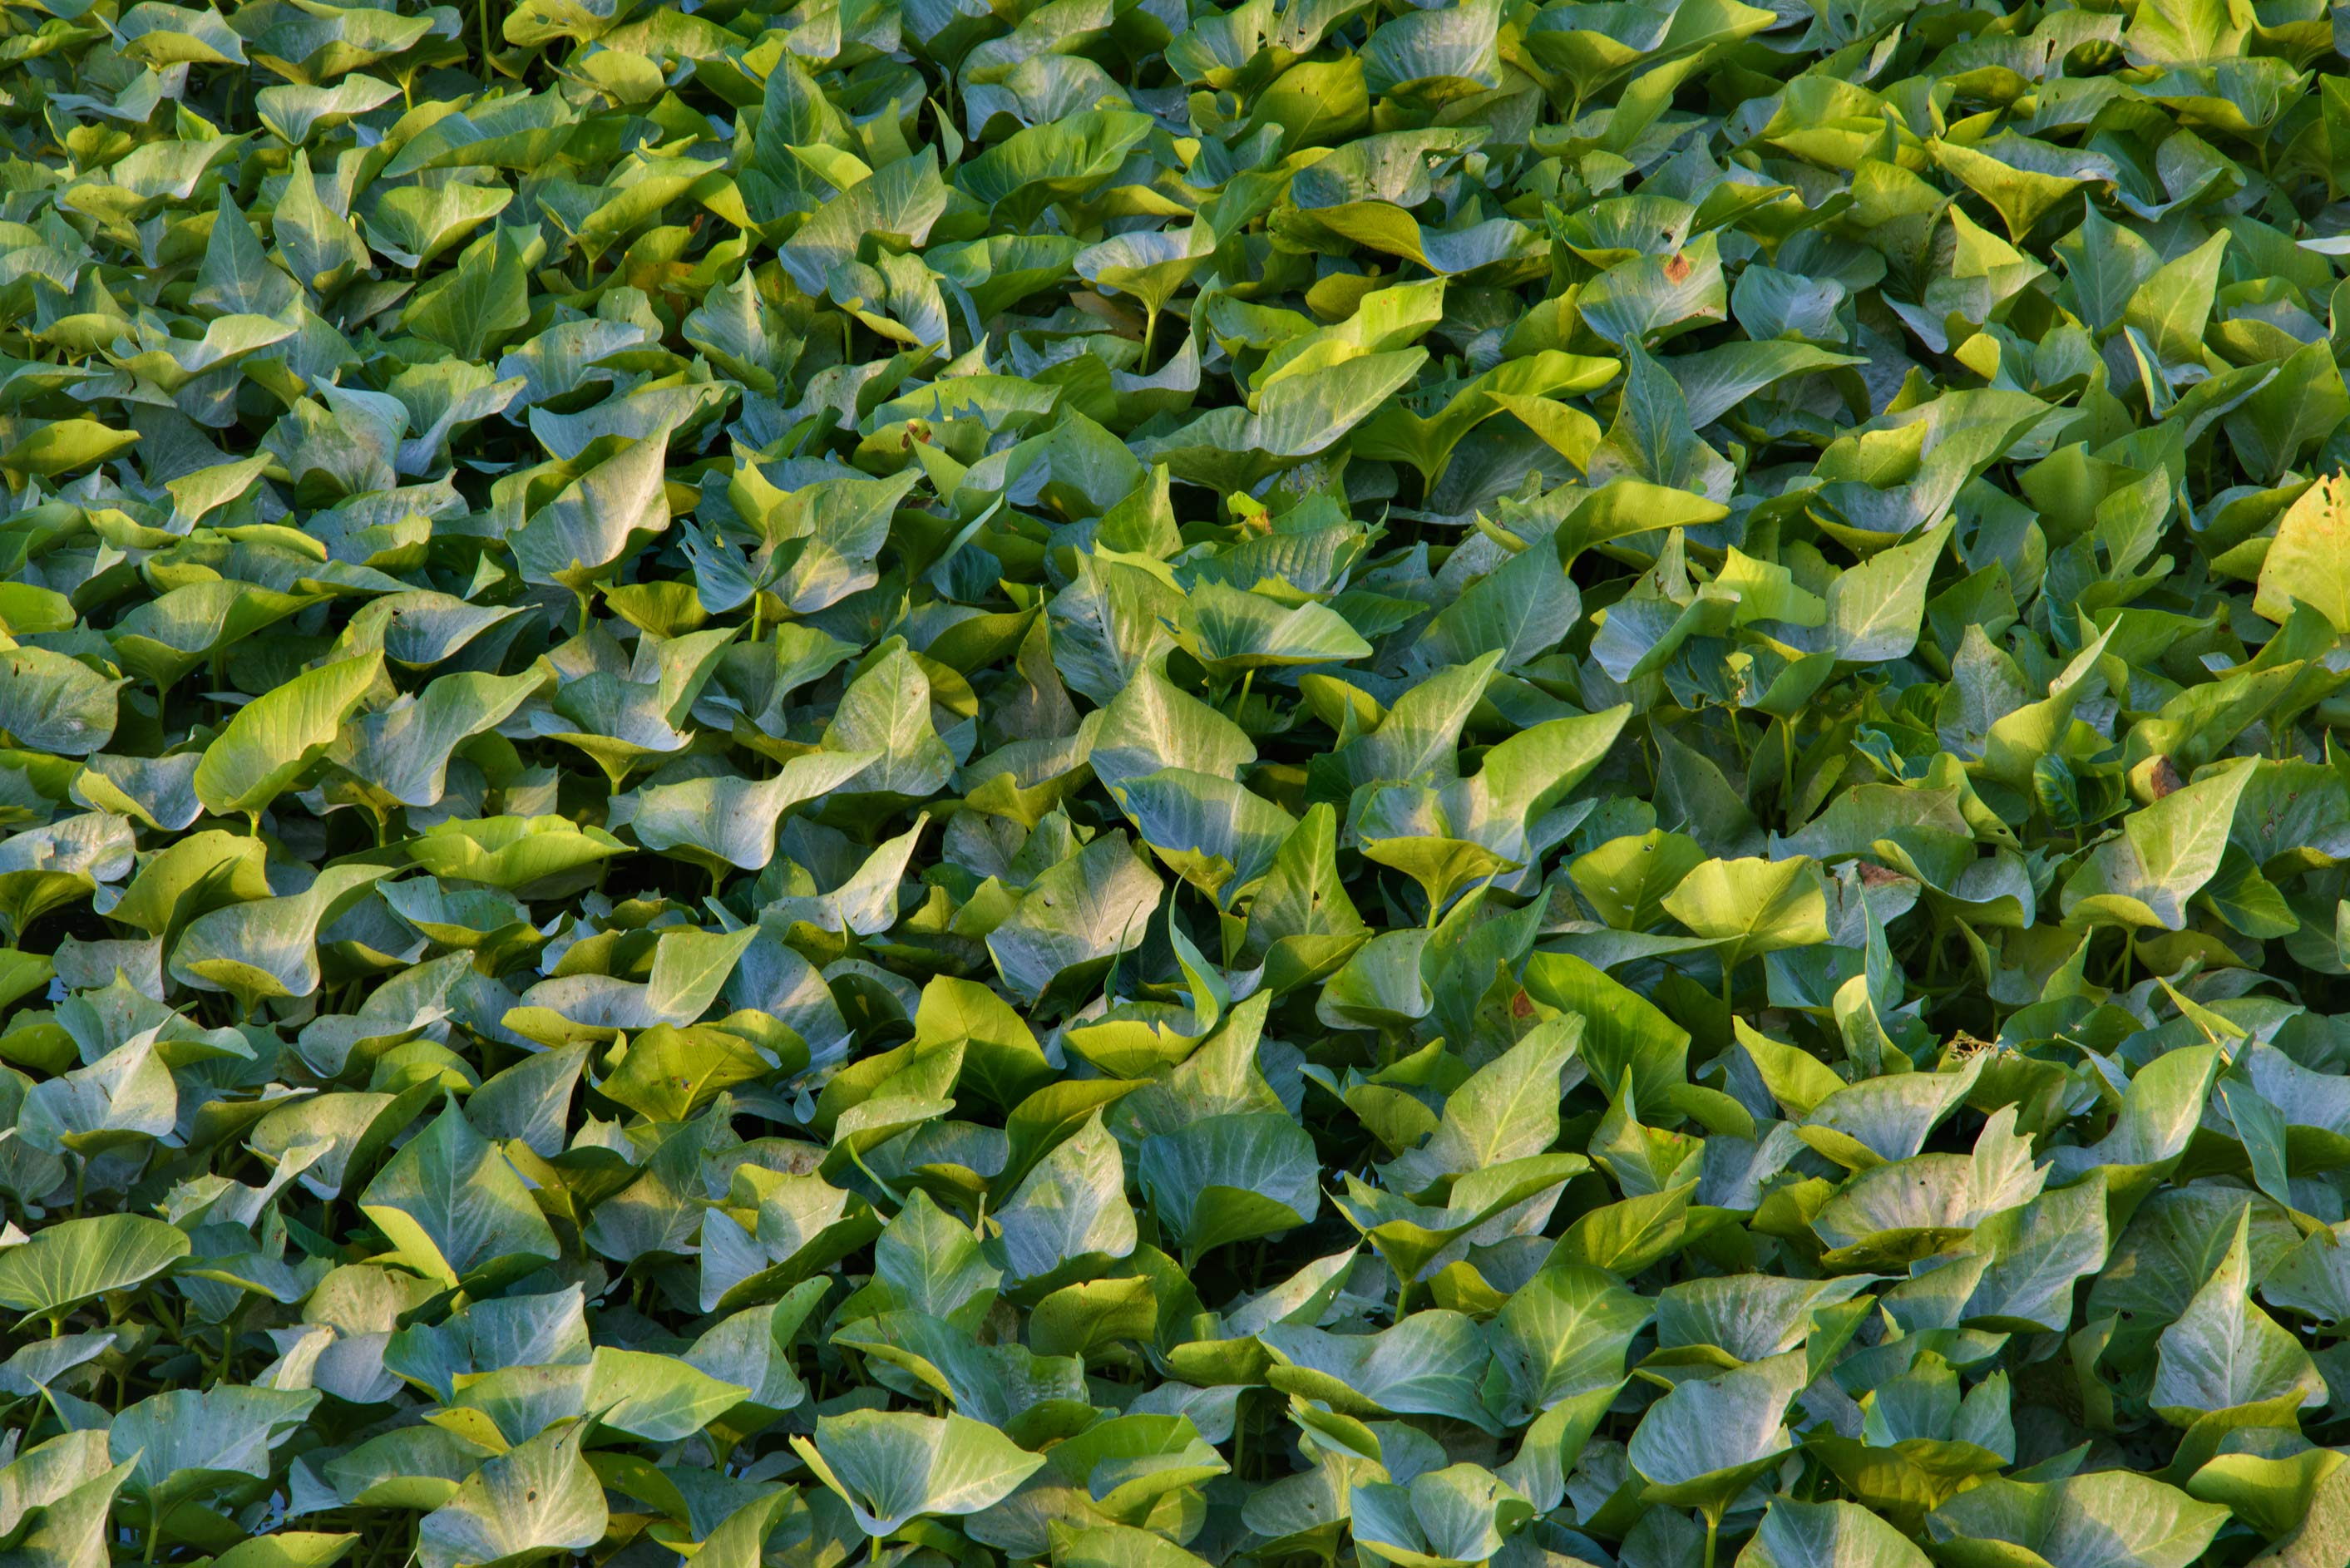 Leaves of water morning glory (water spinach...near Irkhaya (Irkaya) Farms. Qatar